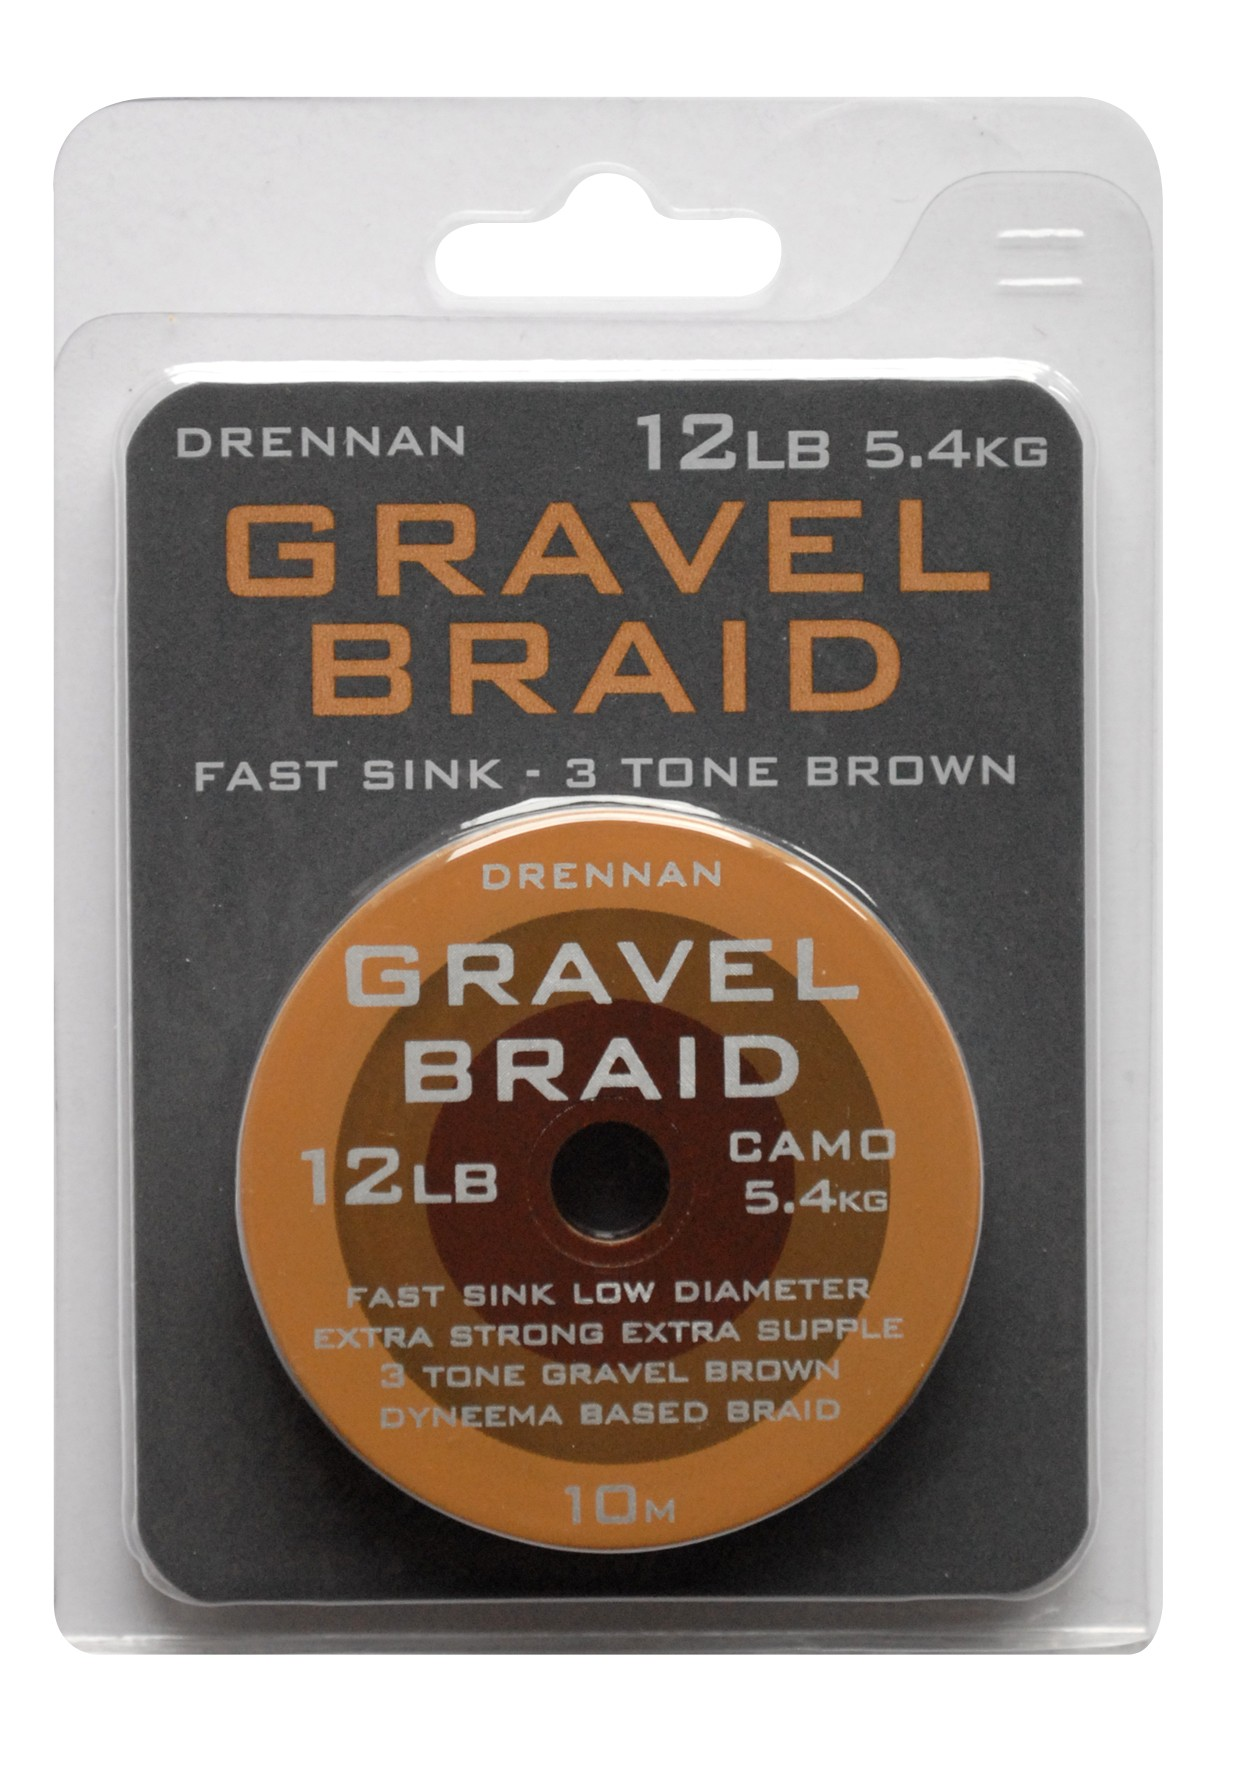 Gravel Braid